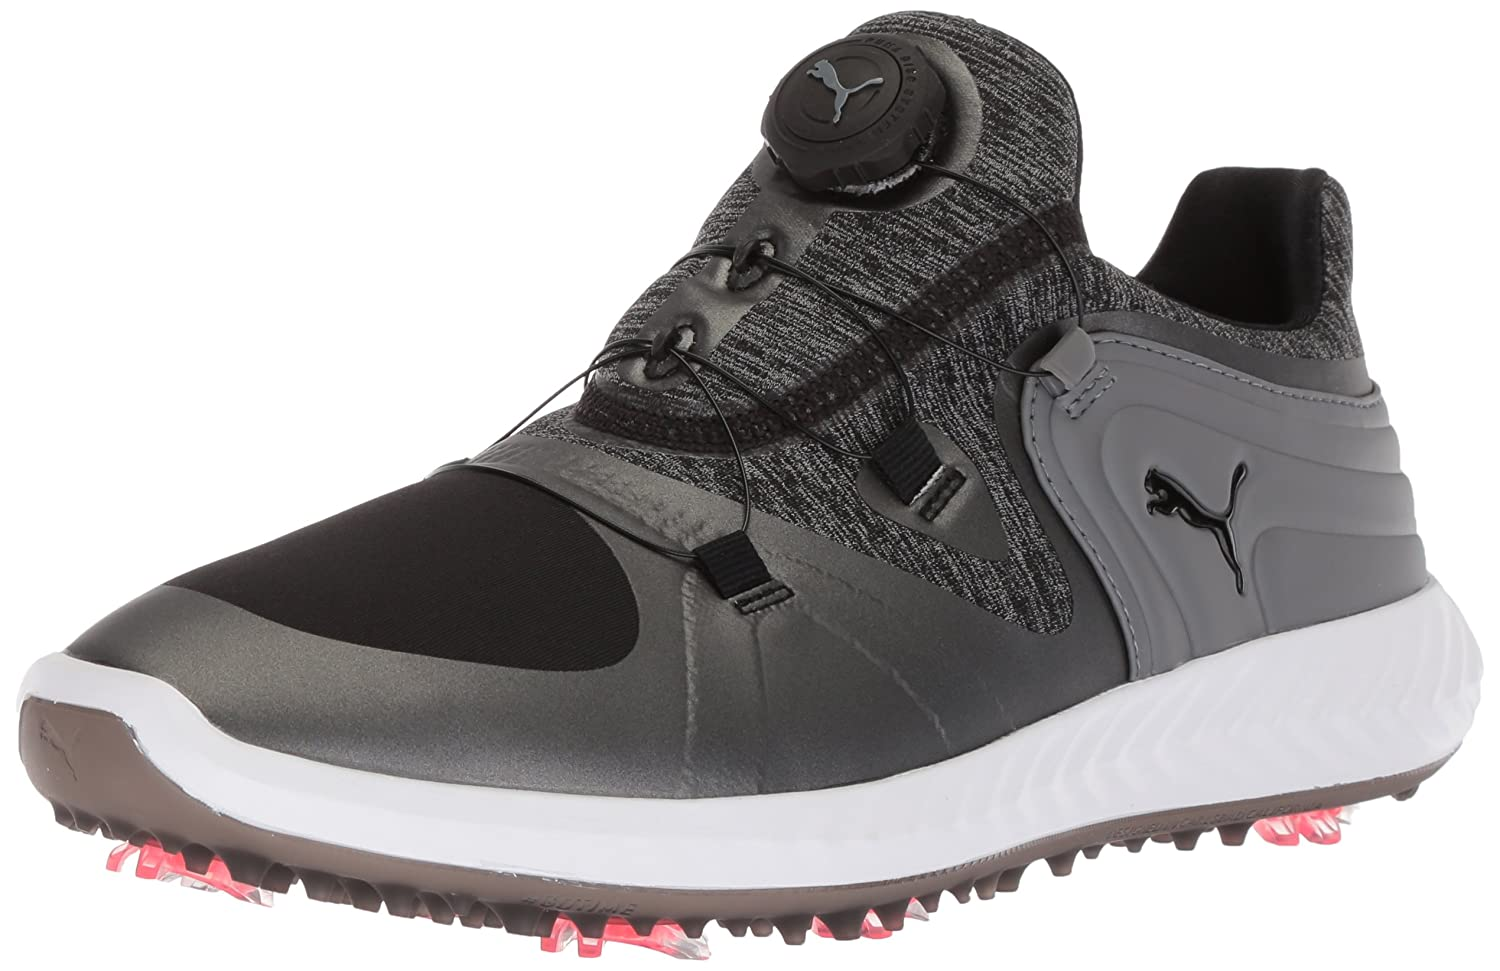 PUMA Women's Ignite Blaze Sport Disc Golf Shoe Gray B074ZHMDQ3 7.5 B(M) US|Black/Steel Gray Shoe eb8b91